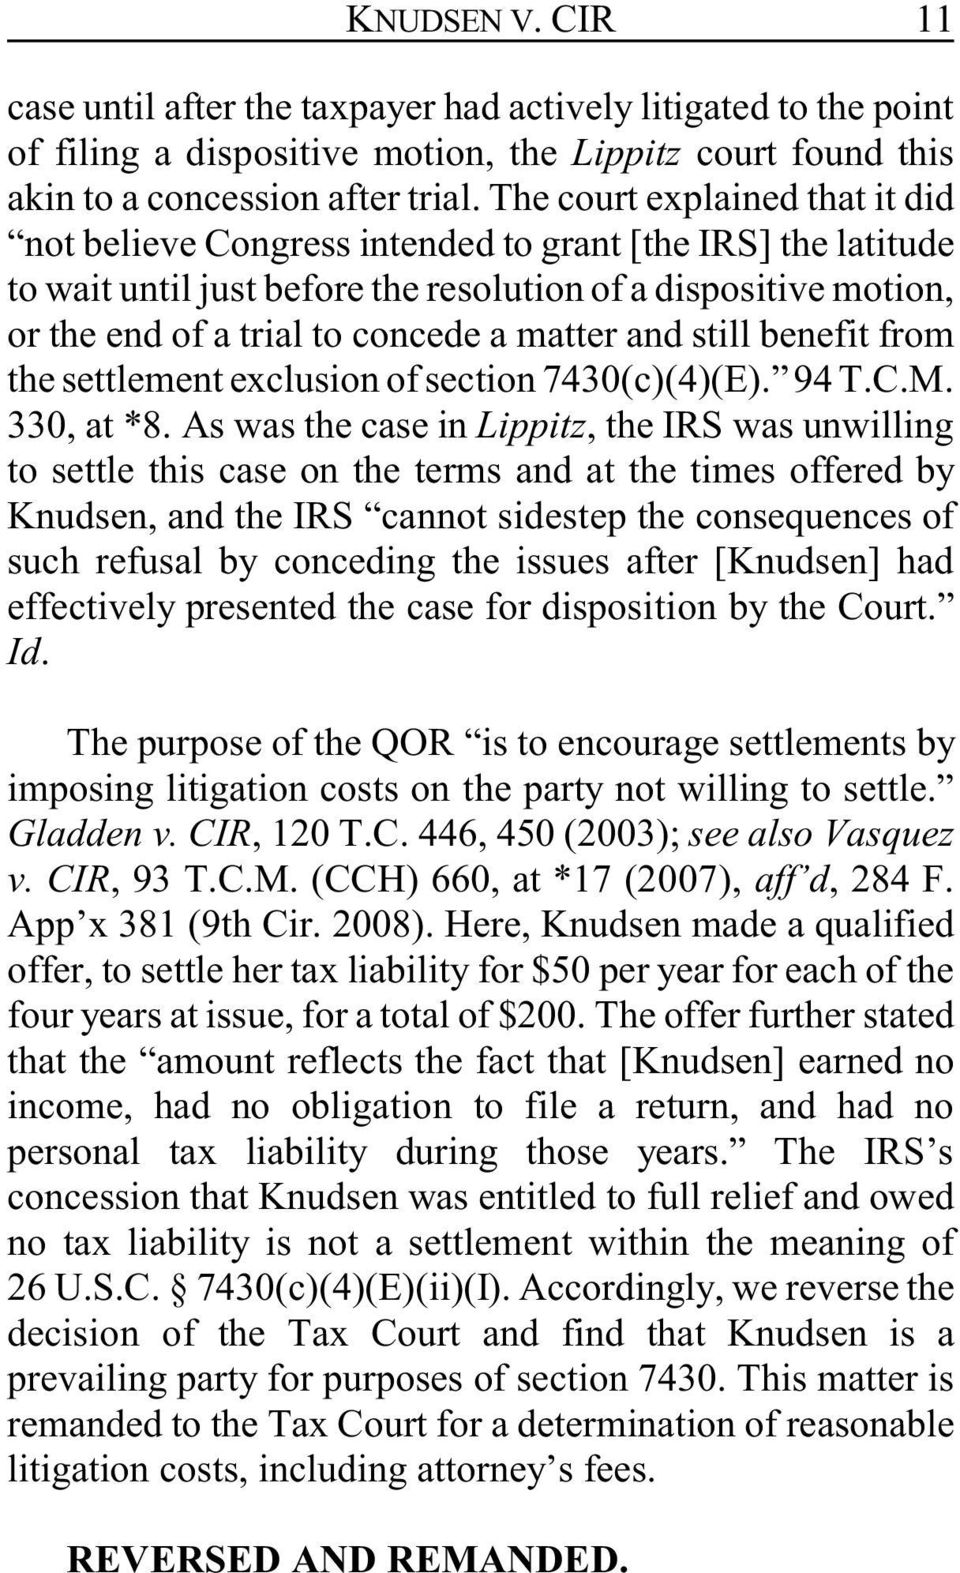 matter and still benefit from the settlement exclusion of section 7430(c)(4)(E). 94 T.C.M. 330, at *8.